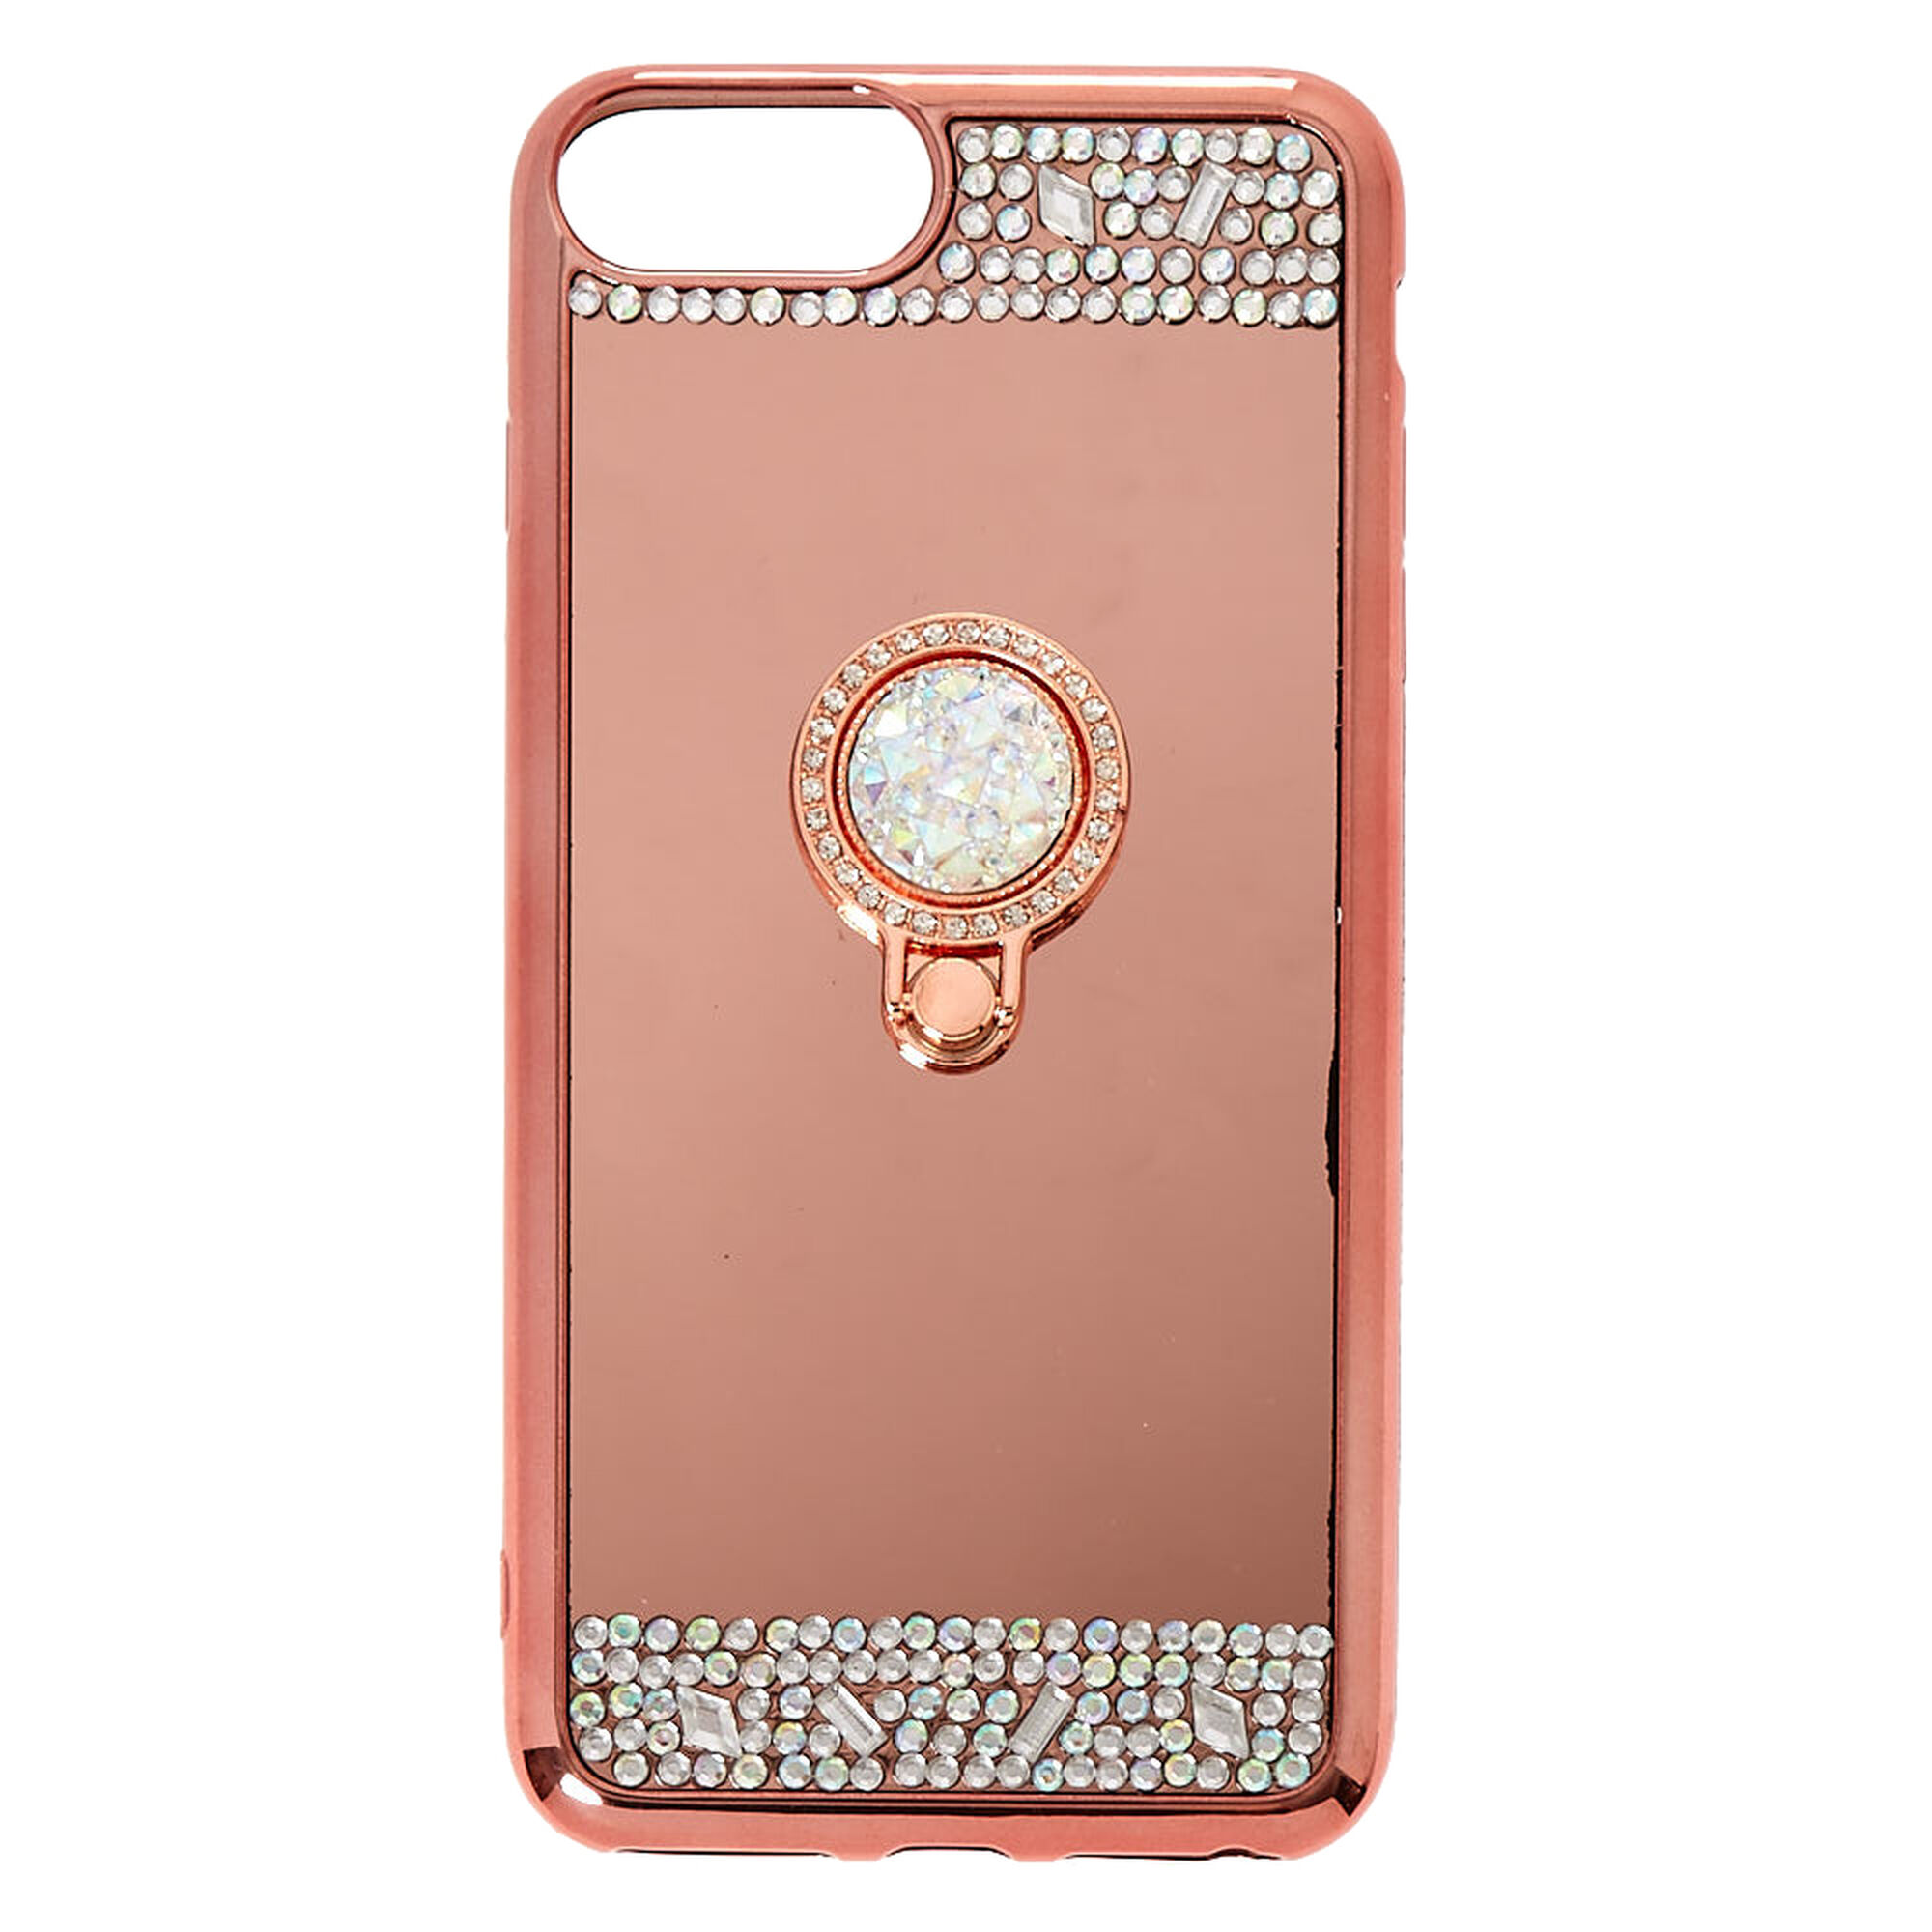 rose gold mirrored ring stand phone case claire 39 s us. Black Bedroom Furniture Sets. Home Design Ideas